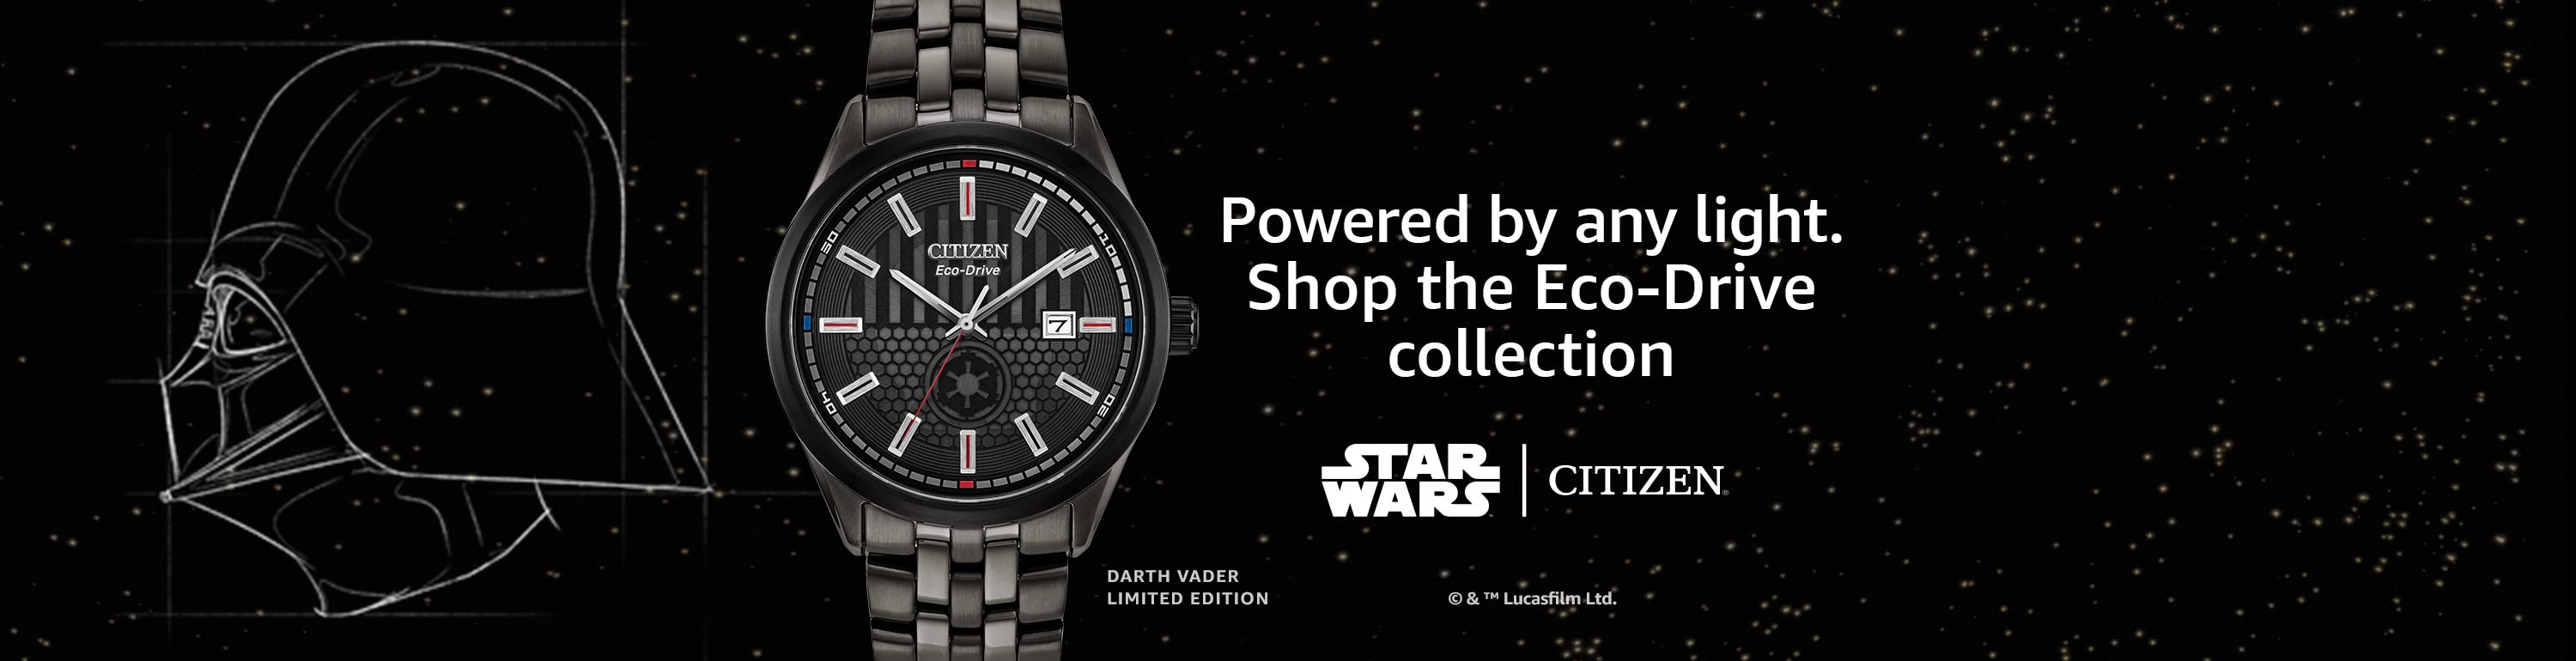 Powered by any light. Shop the Eco-Drive collection